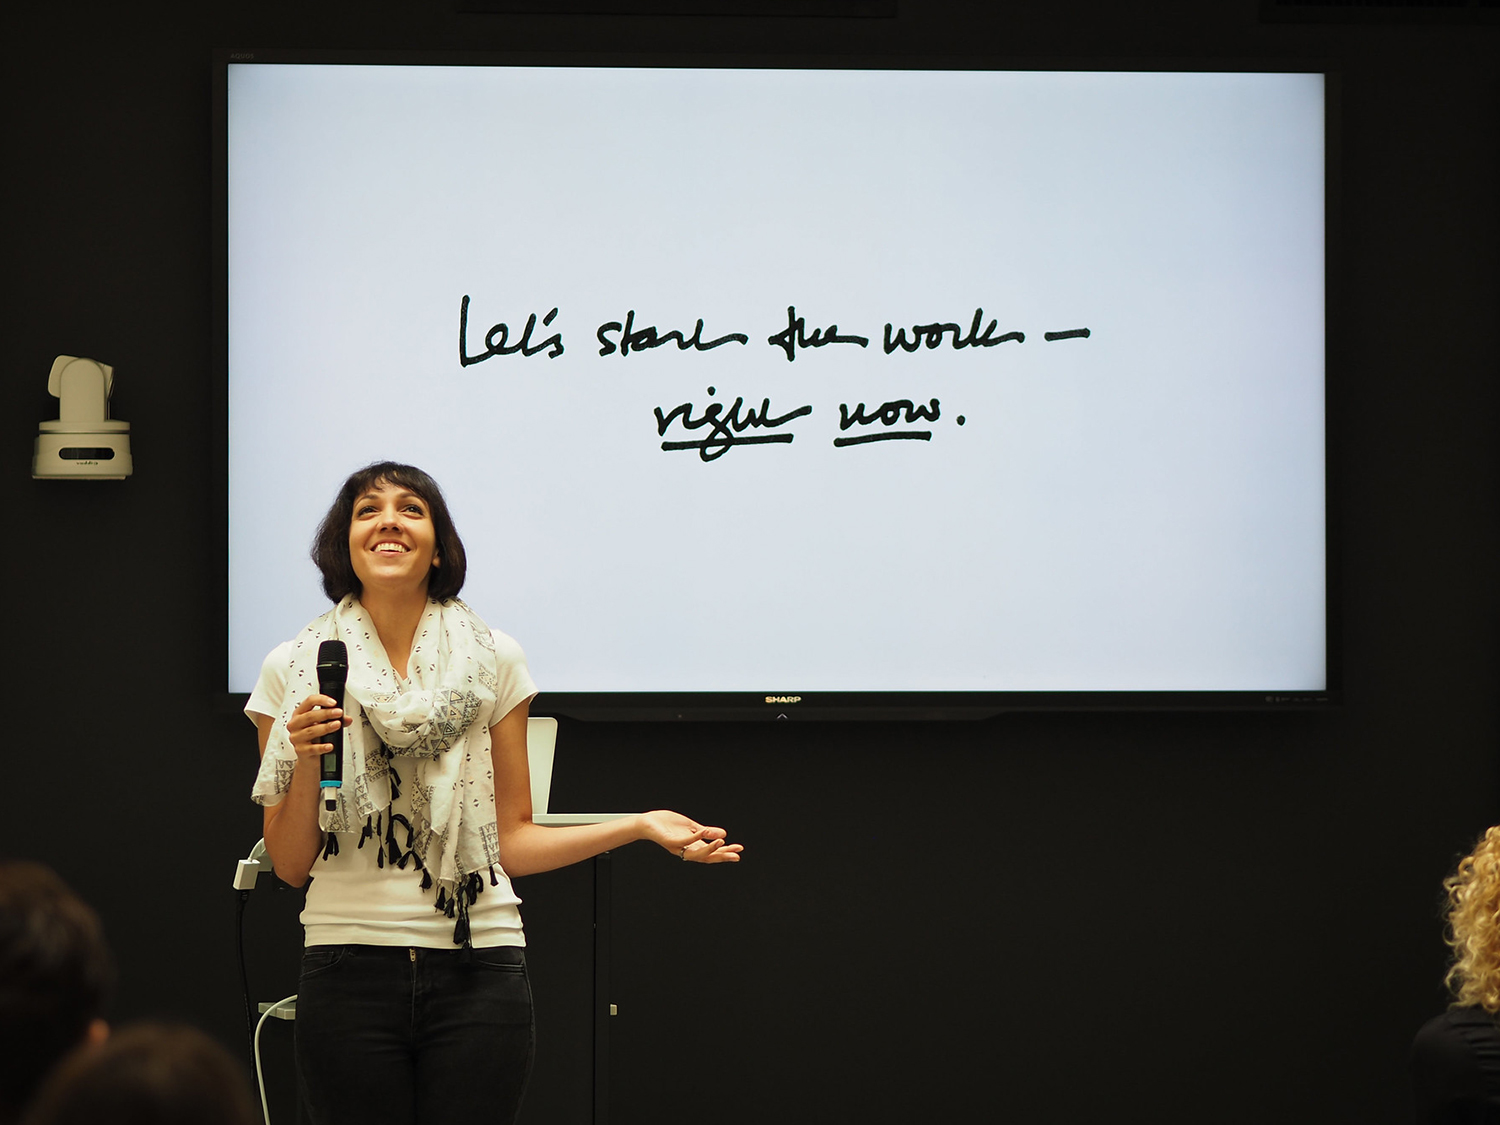 Ashleigh Axios presenting at an event by AIGA Chicago. (Photograph by Chris Mendoza)